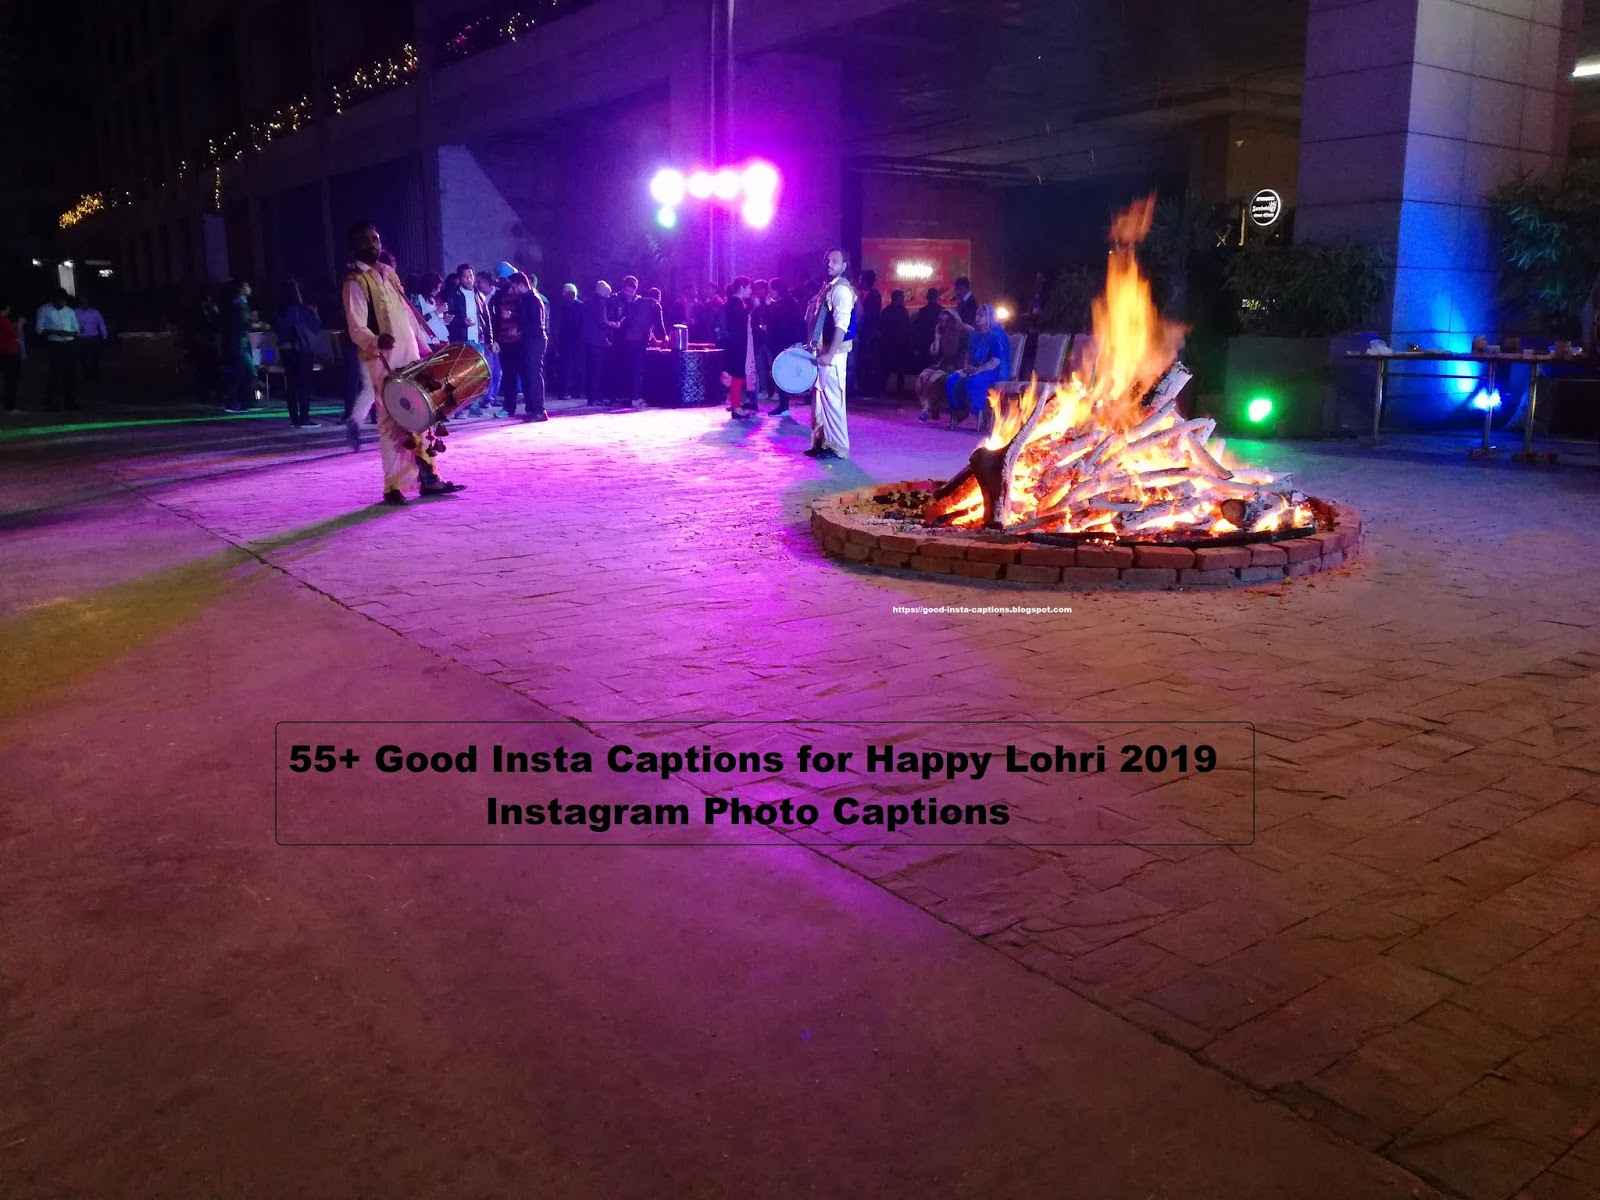 Collection of Happy Lohri Good Insta Caption